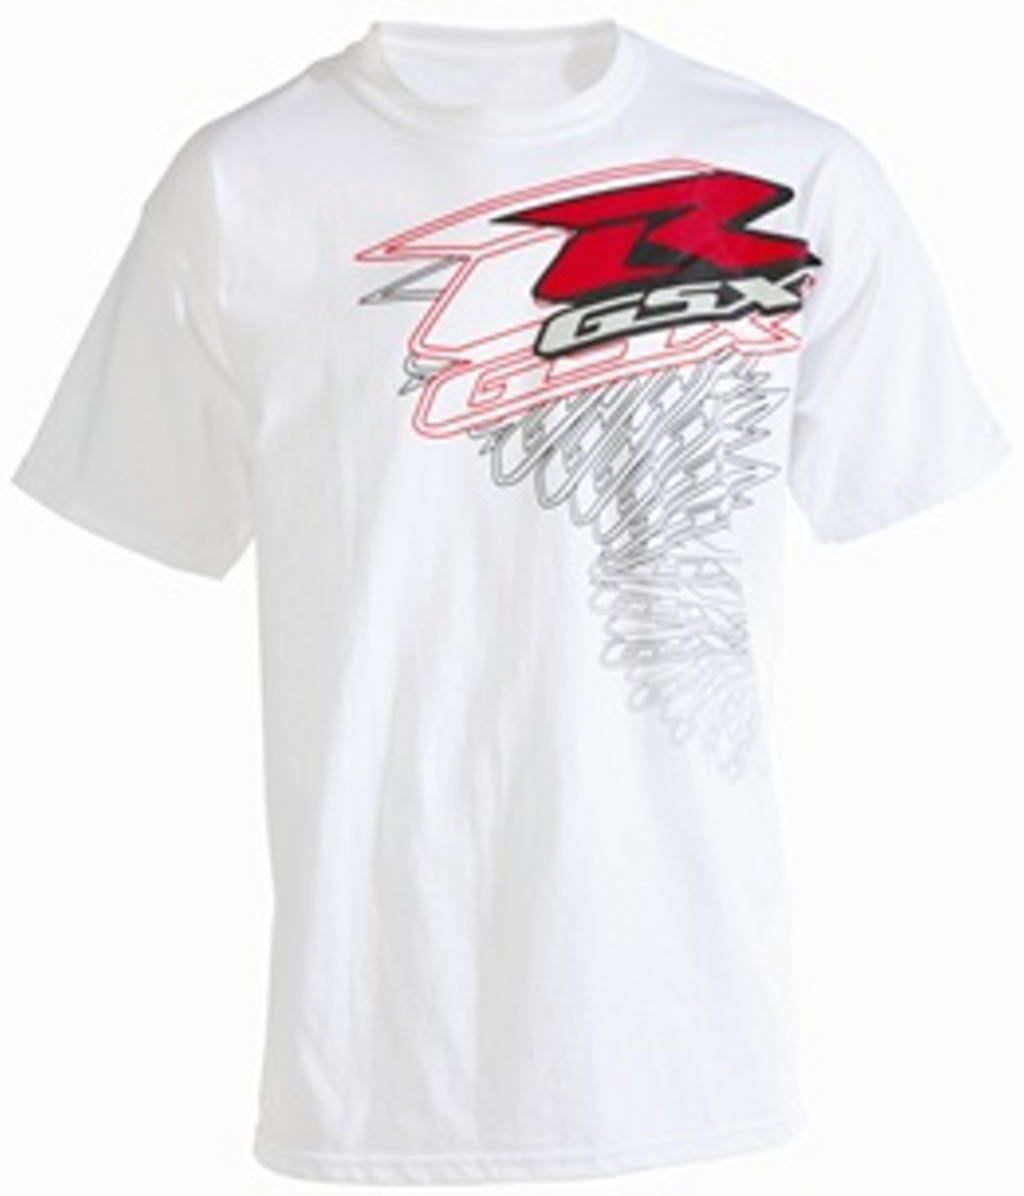 suzuki gsxr twisted short sleeve t shirt white ebay. Black Bedroom Furniture Sets. Home Design Ideas